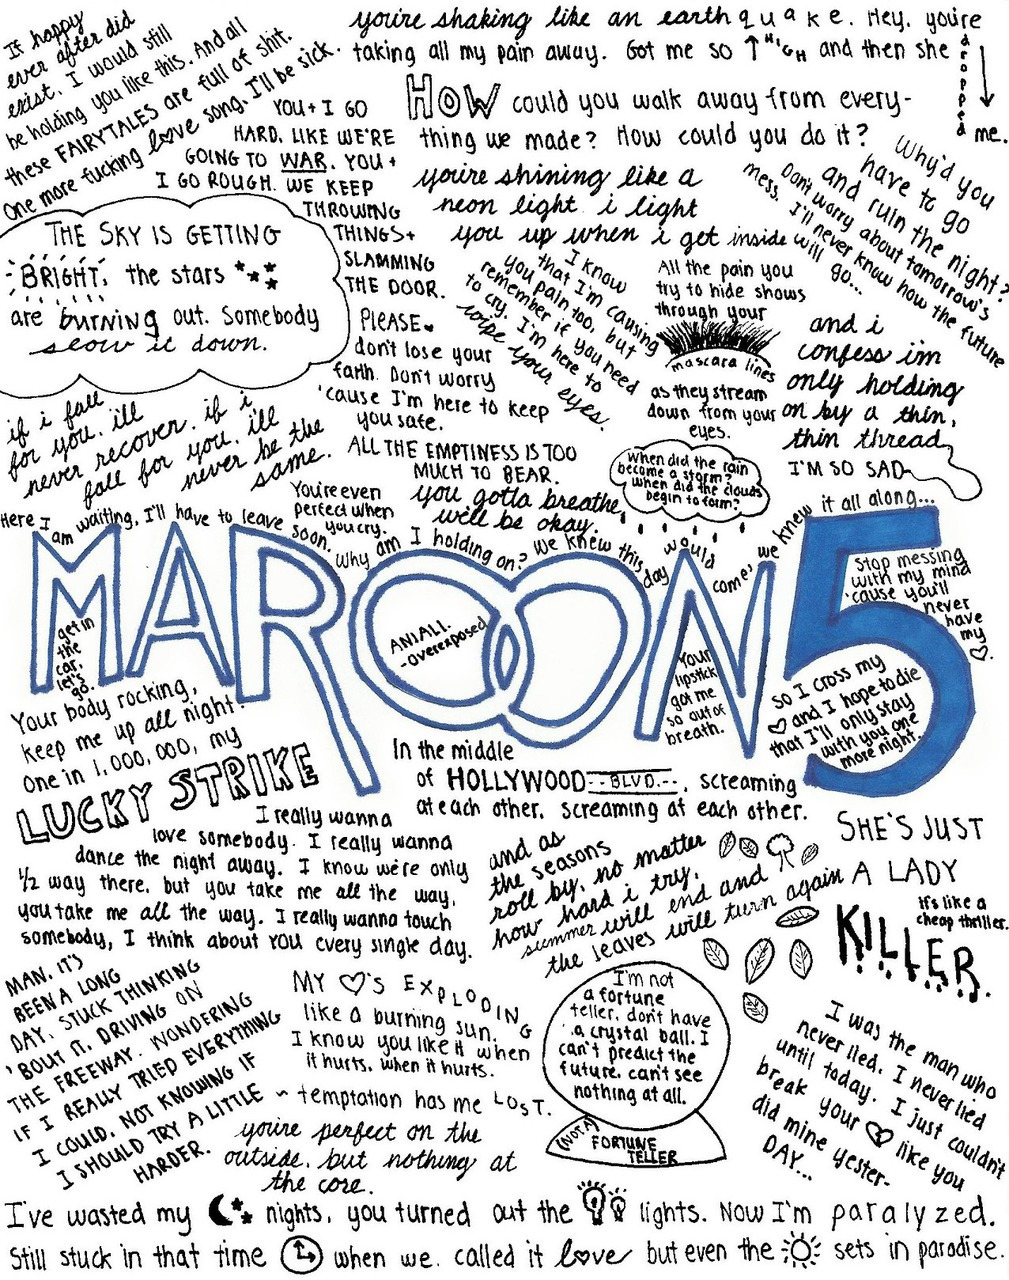 79 Images About Maroon 5 On We Heart It See More About Maroon 5 Lyrics And Music